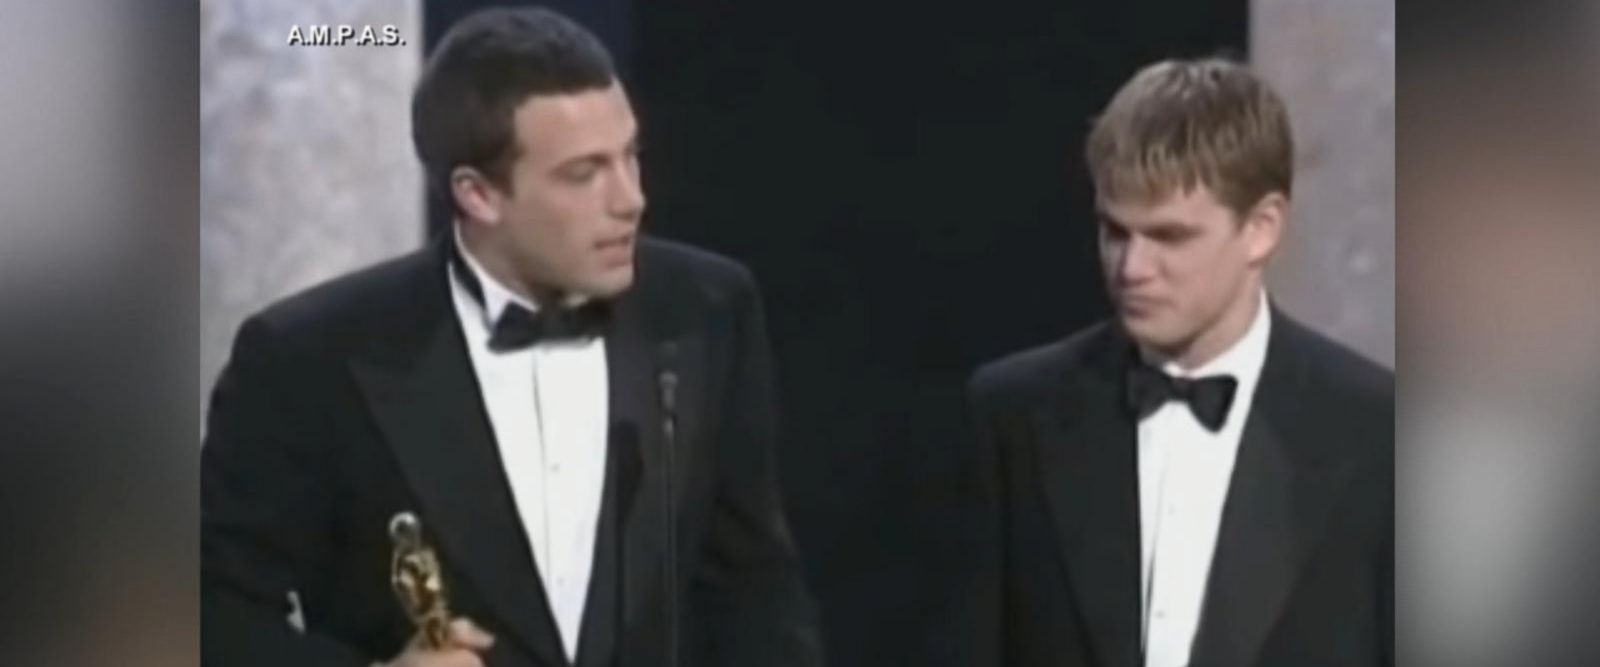 VIDEO: Most memorable Academy Awards acceptance speeches